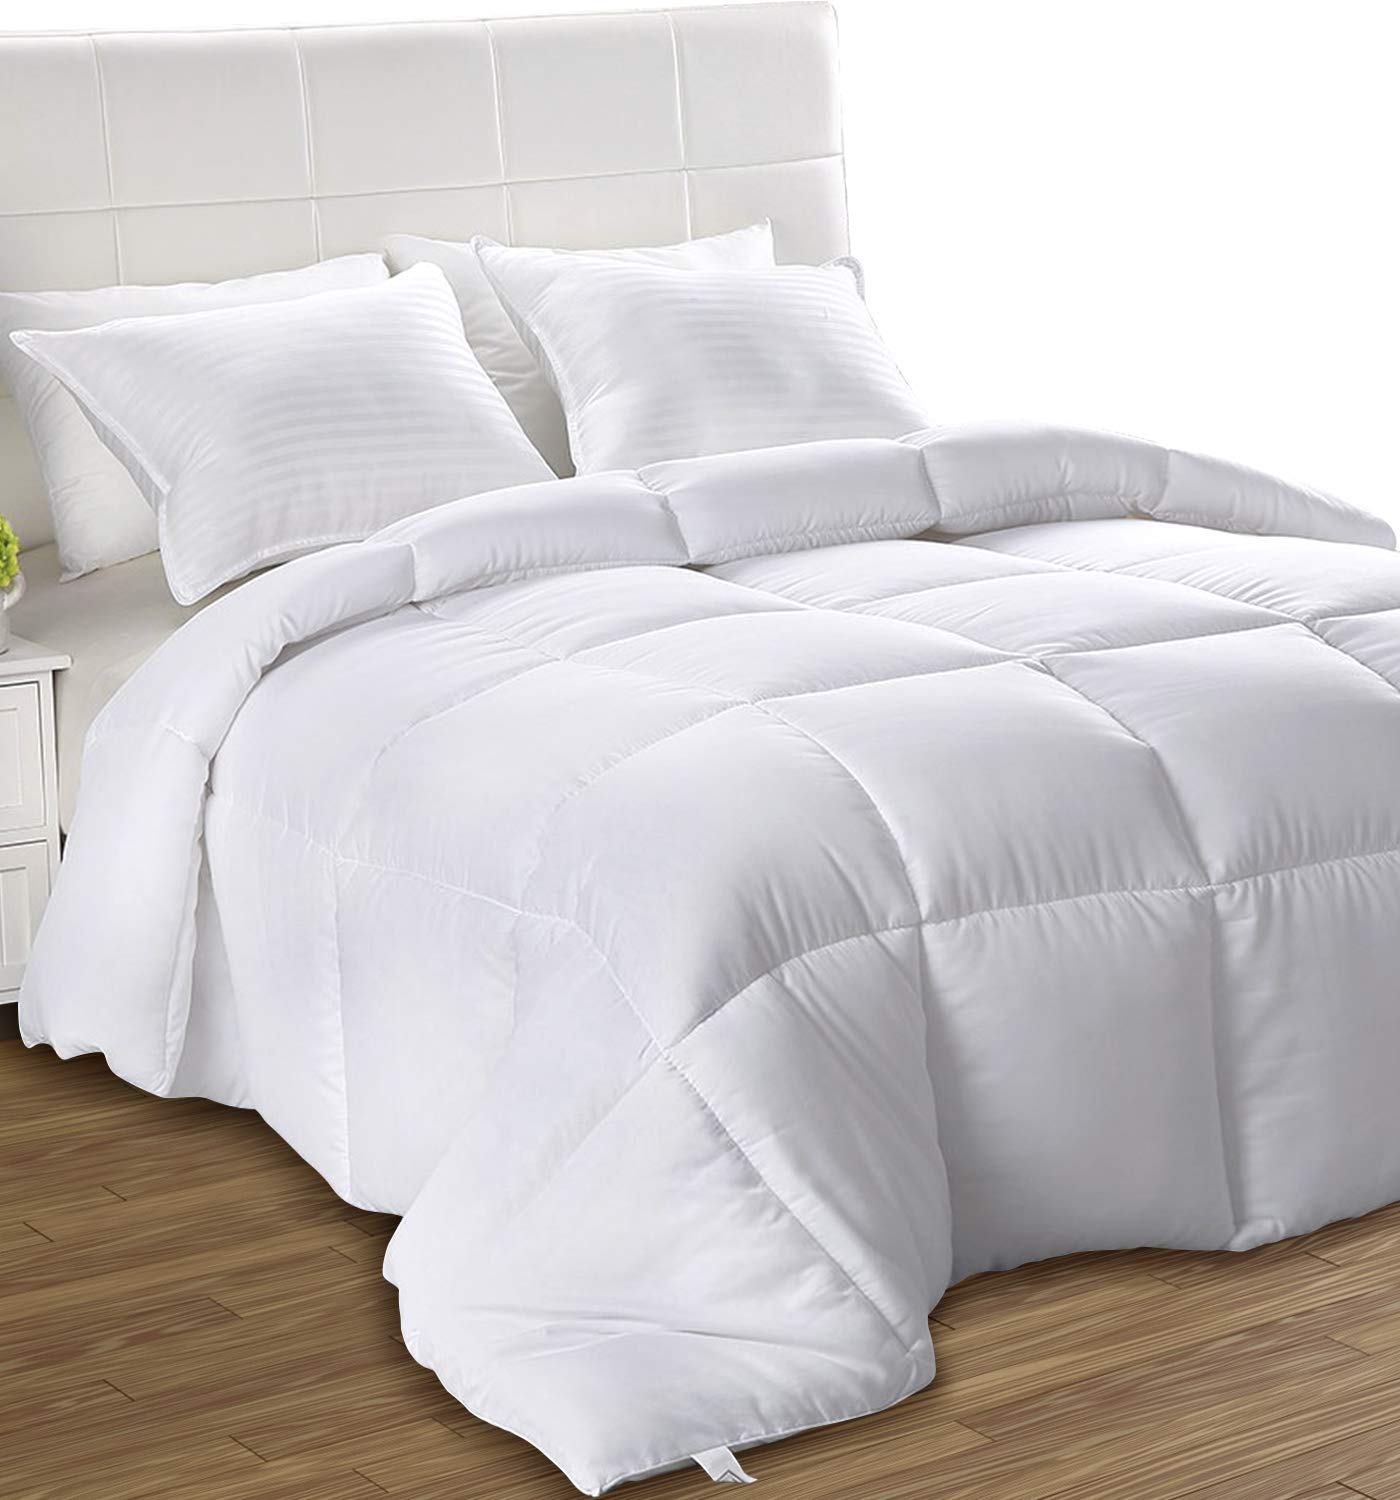 Utopia Bedding All Season Comforter - Ultra Soft Down Alternative Comforter - Plush Siliconized Fiberfill Duvet Insert - Box Stitched (Twin/Twin XL, White)